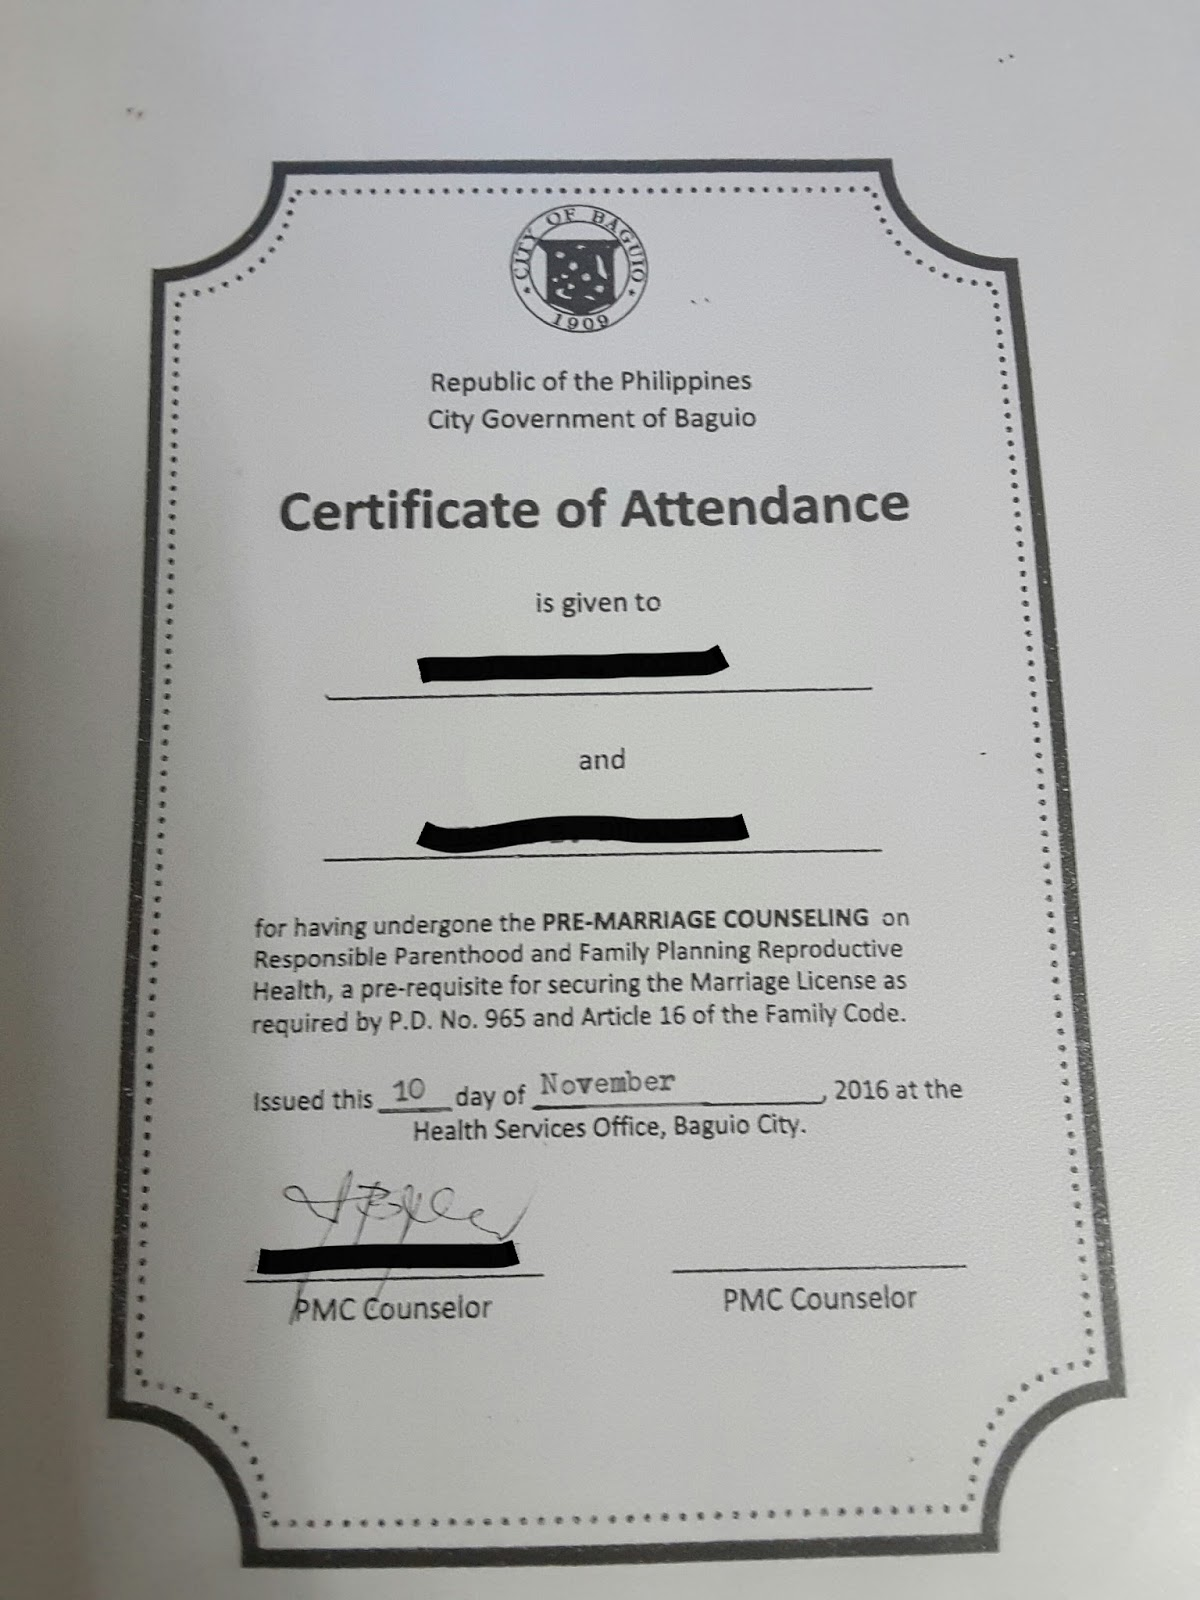 Baguio city marriage license application youll be issued a certificate of attendance once completed please plan ahead of time as the seminar is only scheduled during tuesdays and thursdays altavistaventures Choice Image